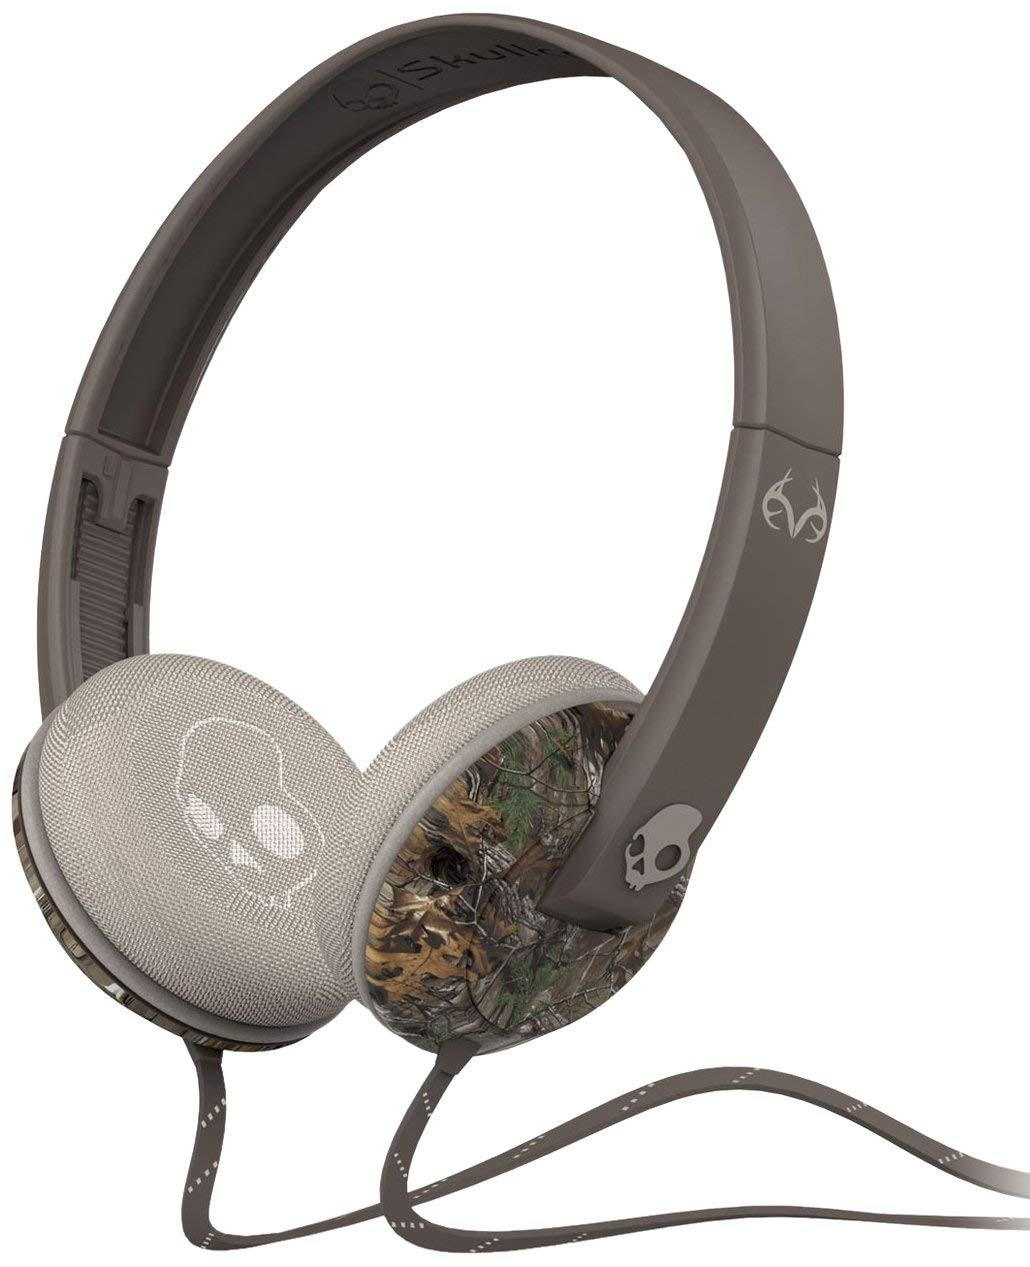 Skullcandy Unisex Uprock Mic'd Real Tree Camo/Dark Tan Headphones